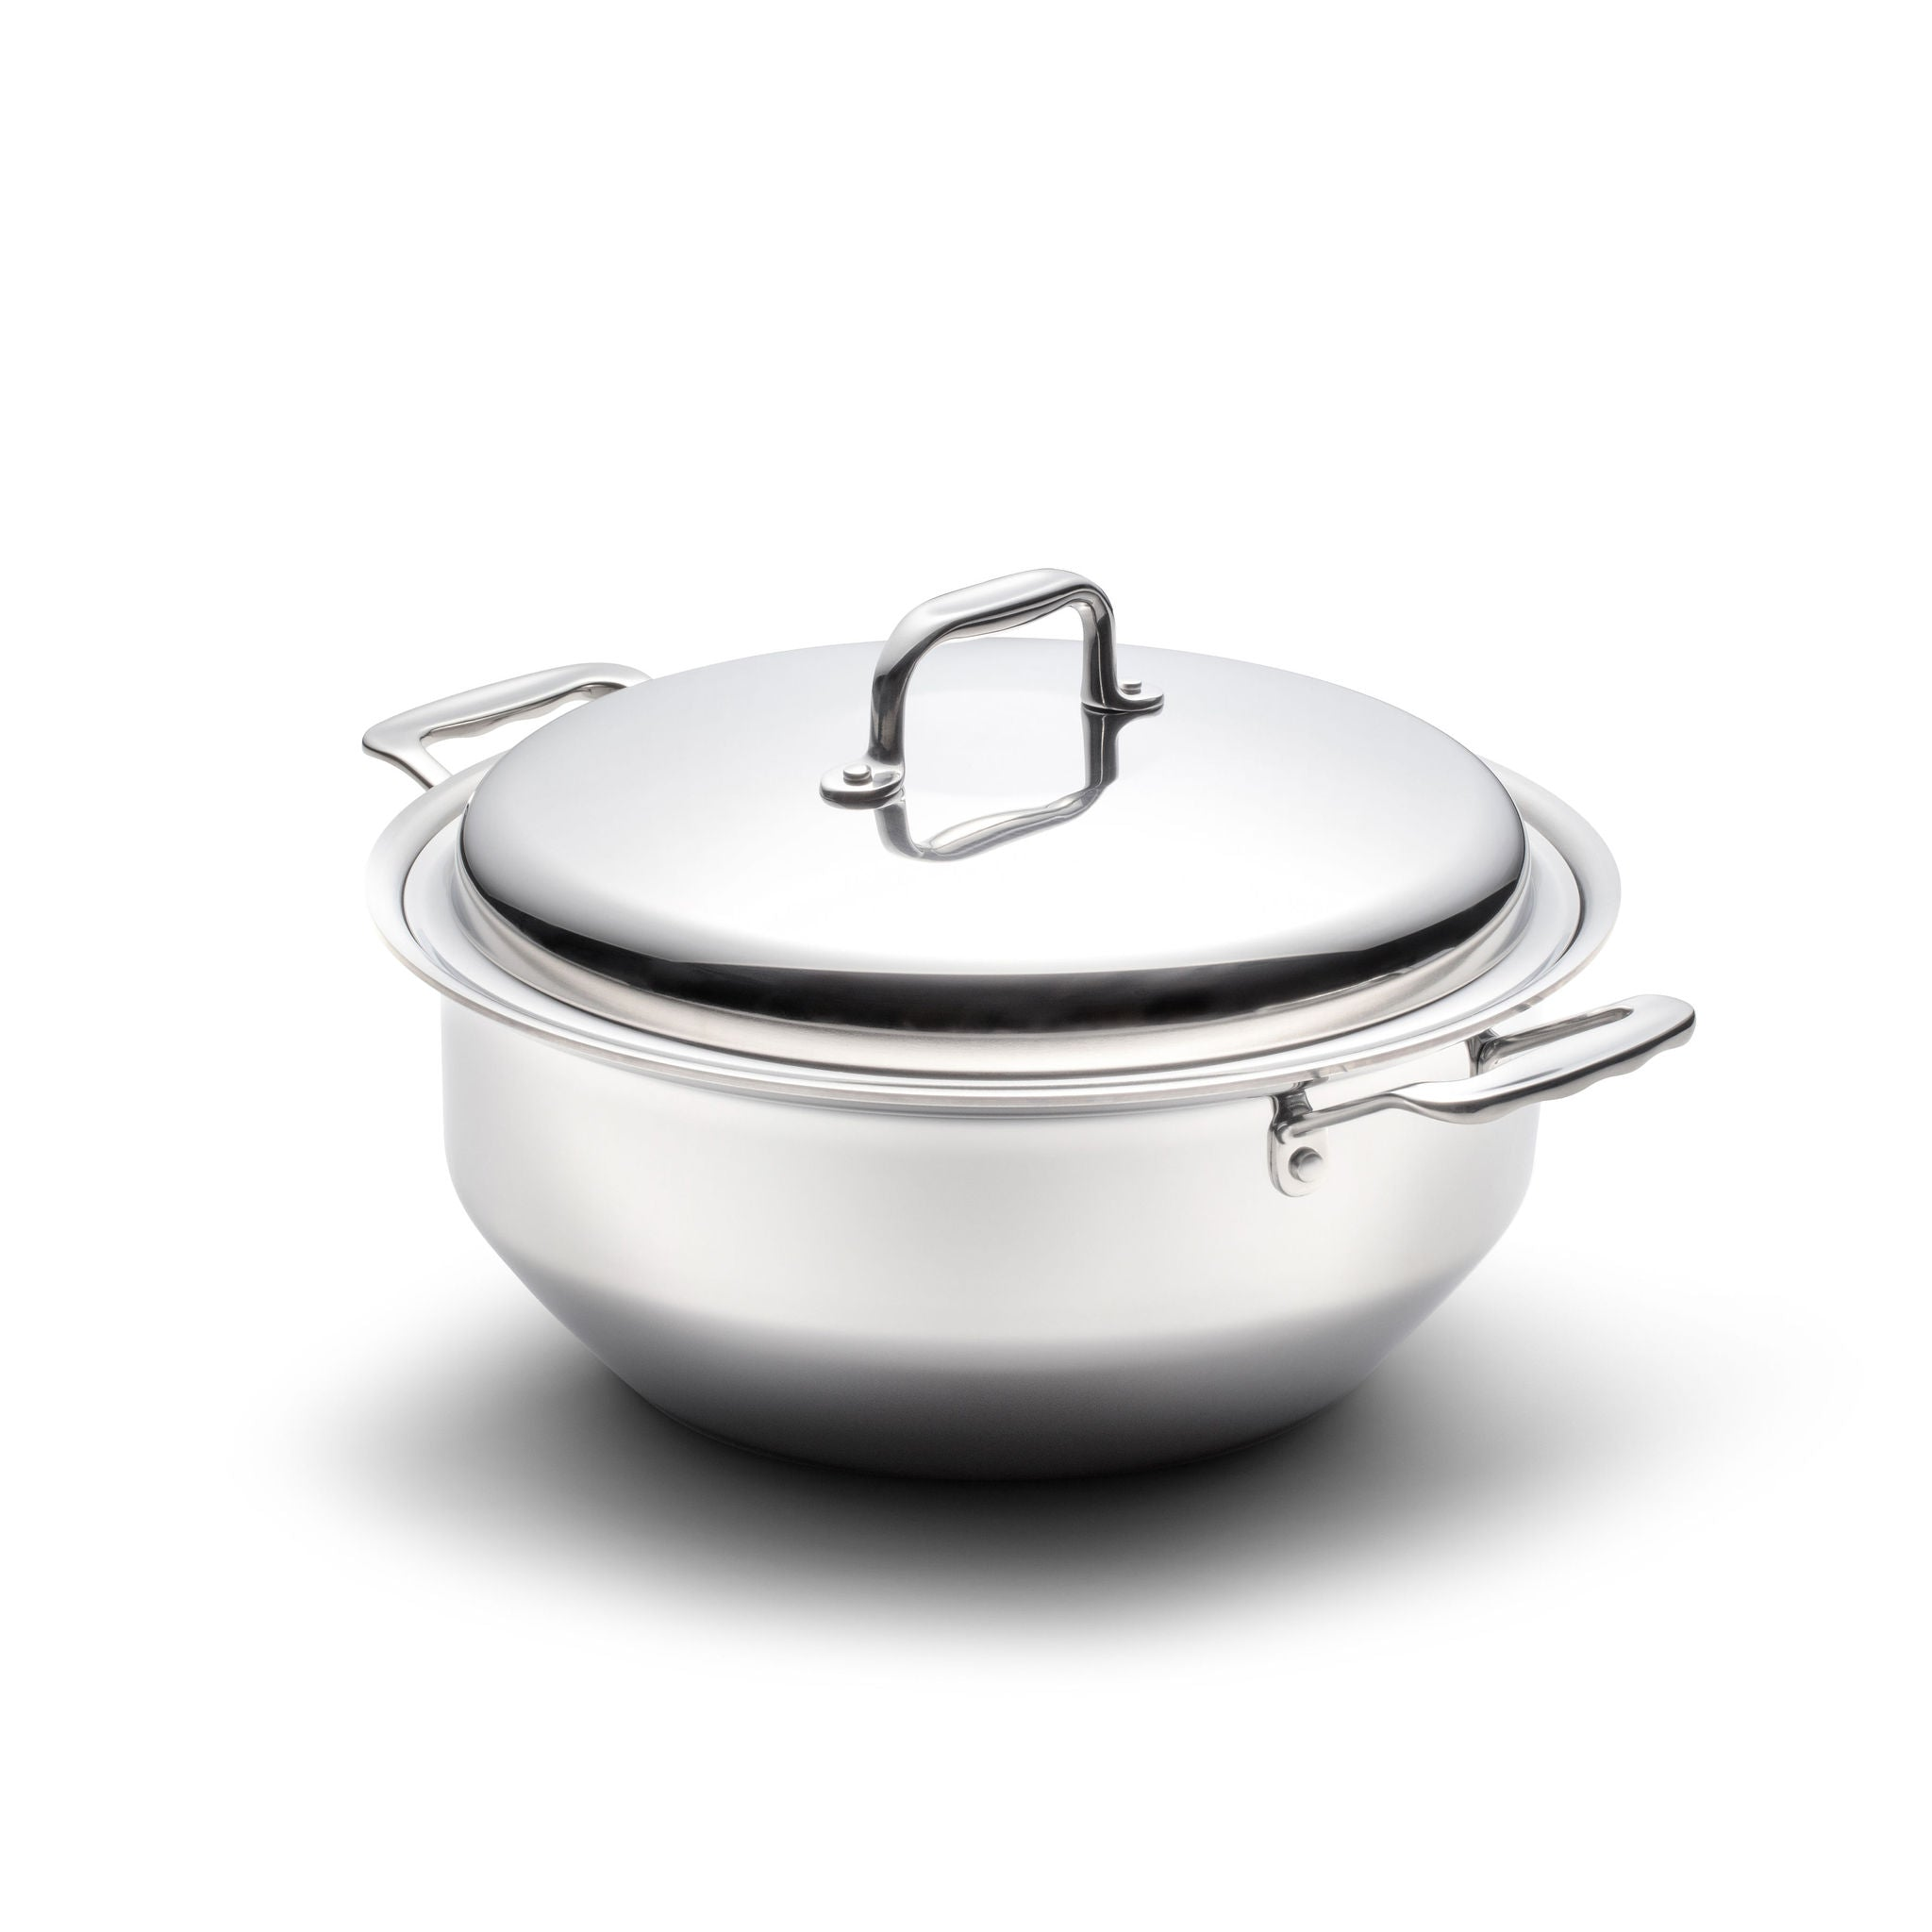 6 Quart Gourmet Stockpot with Cover